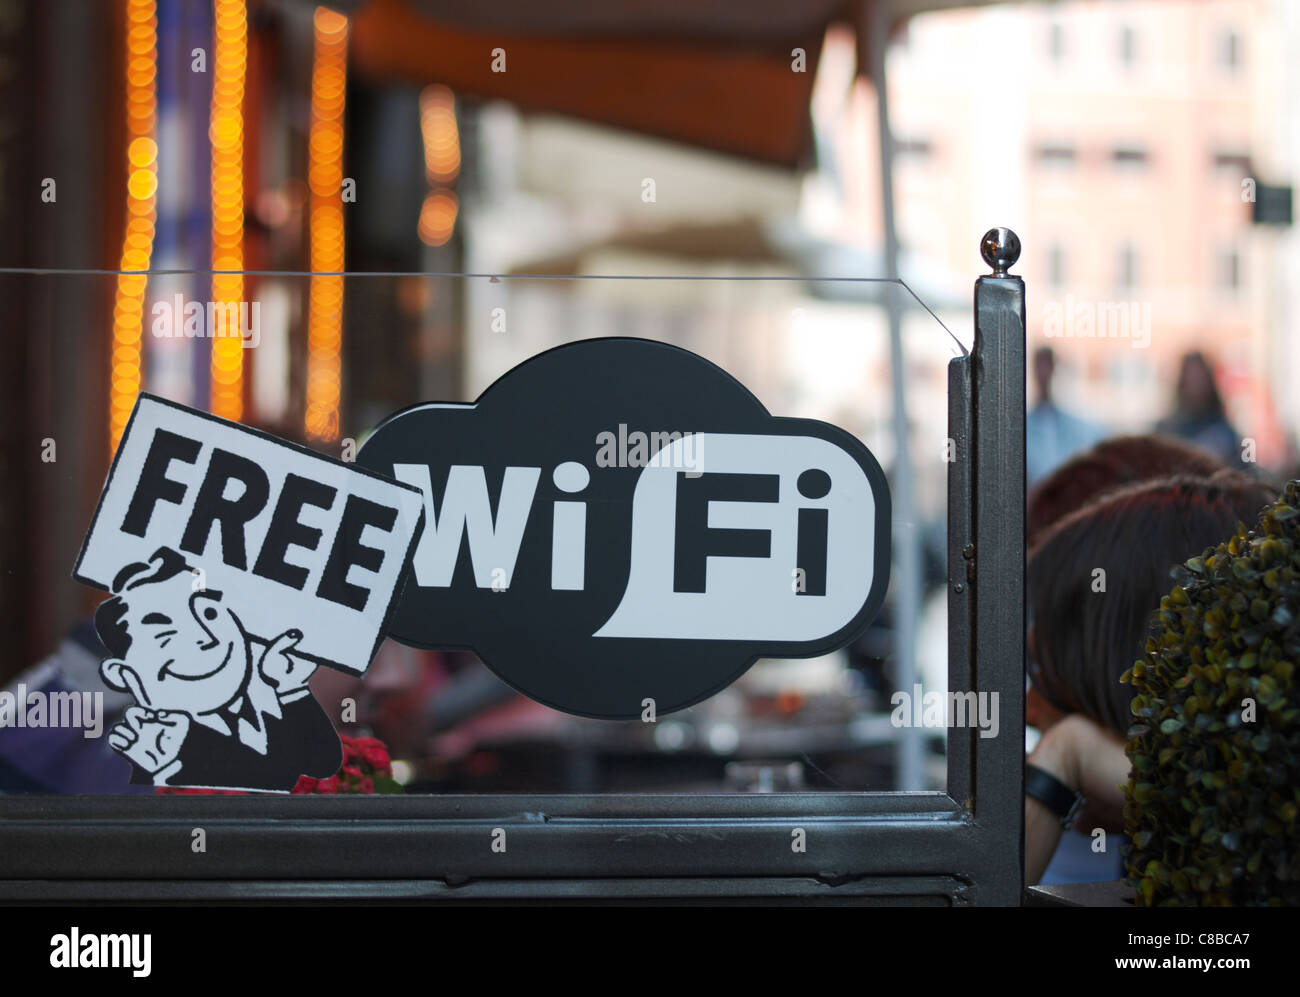 Restaurant in Rome, with free wi-fi sticker, shallow DOF. - Stock Image